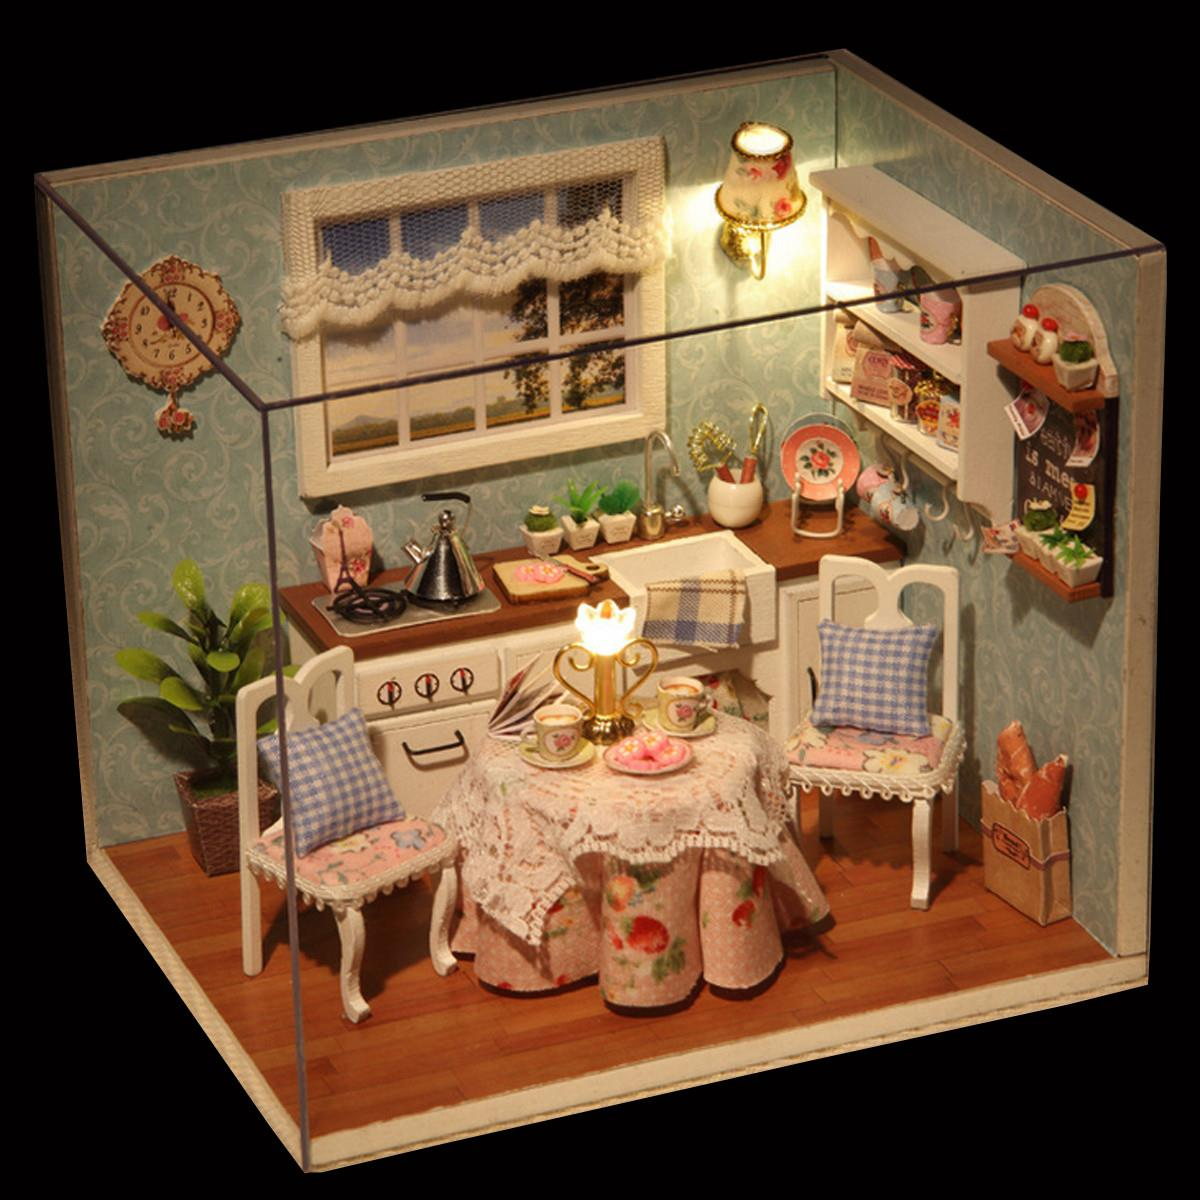 Mini Kitchen Room Box: Aliexpress.com : Buy DIY Wooden Doll House Toys Dollhouse